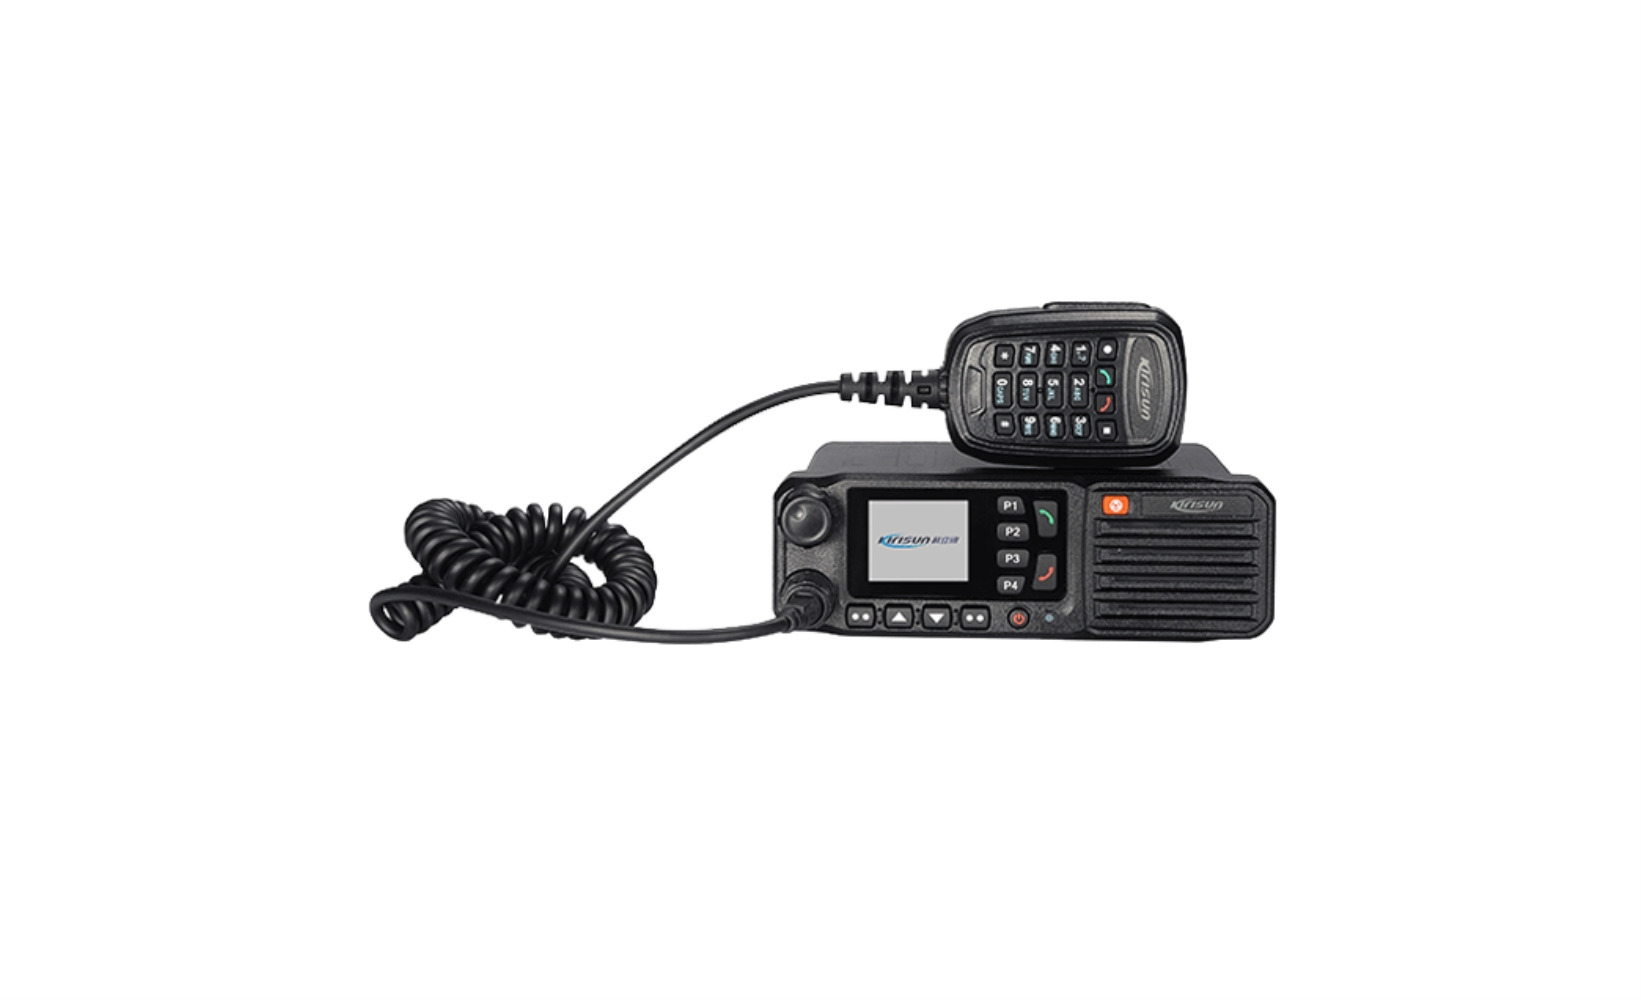 photo of Kirisun TM-840-VHF-25 - 1024 Channel, 25 Watt, VHF Mobile Radio